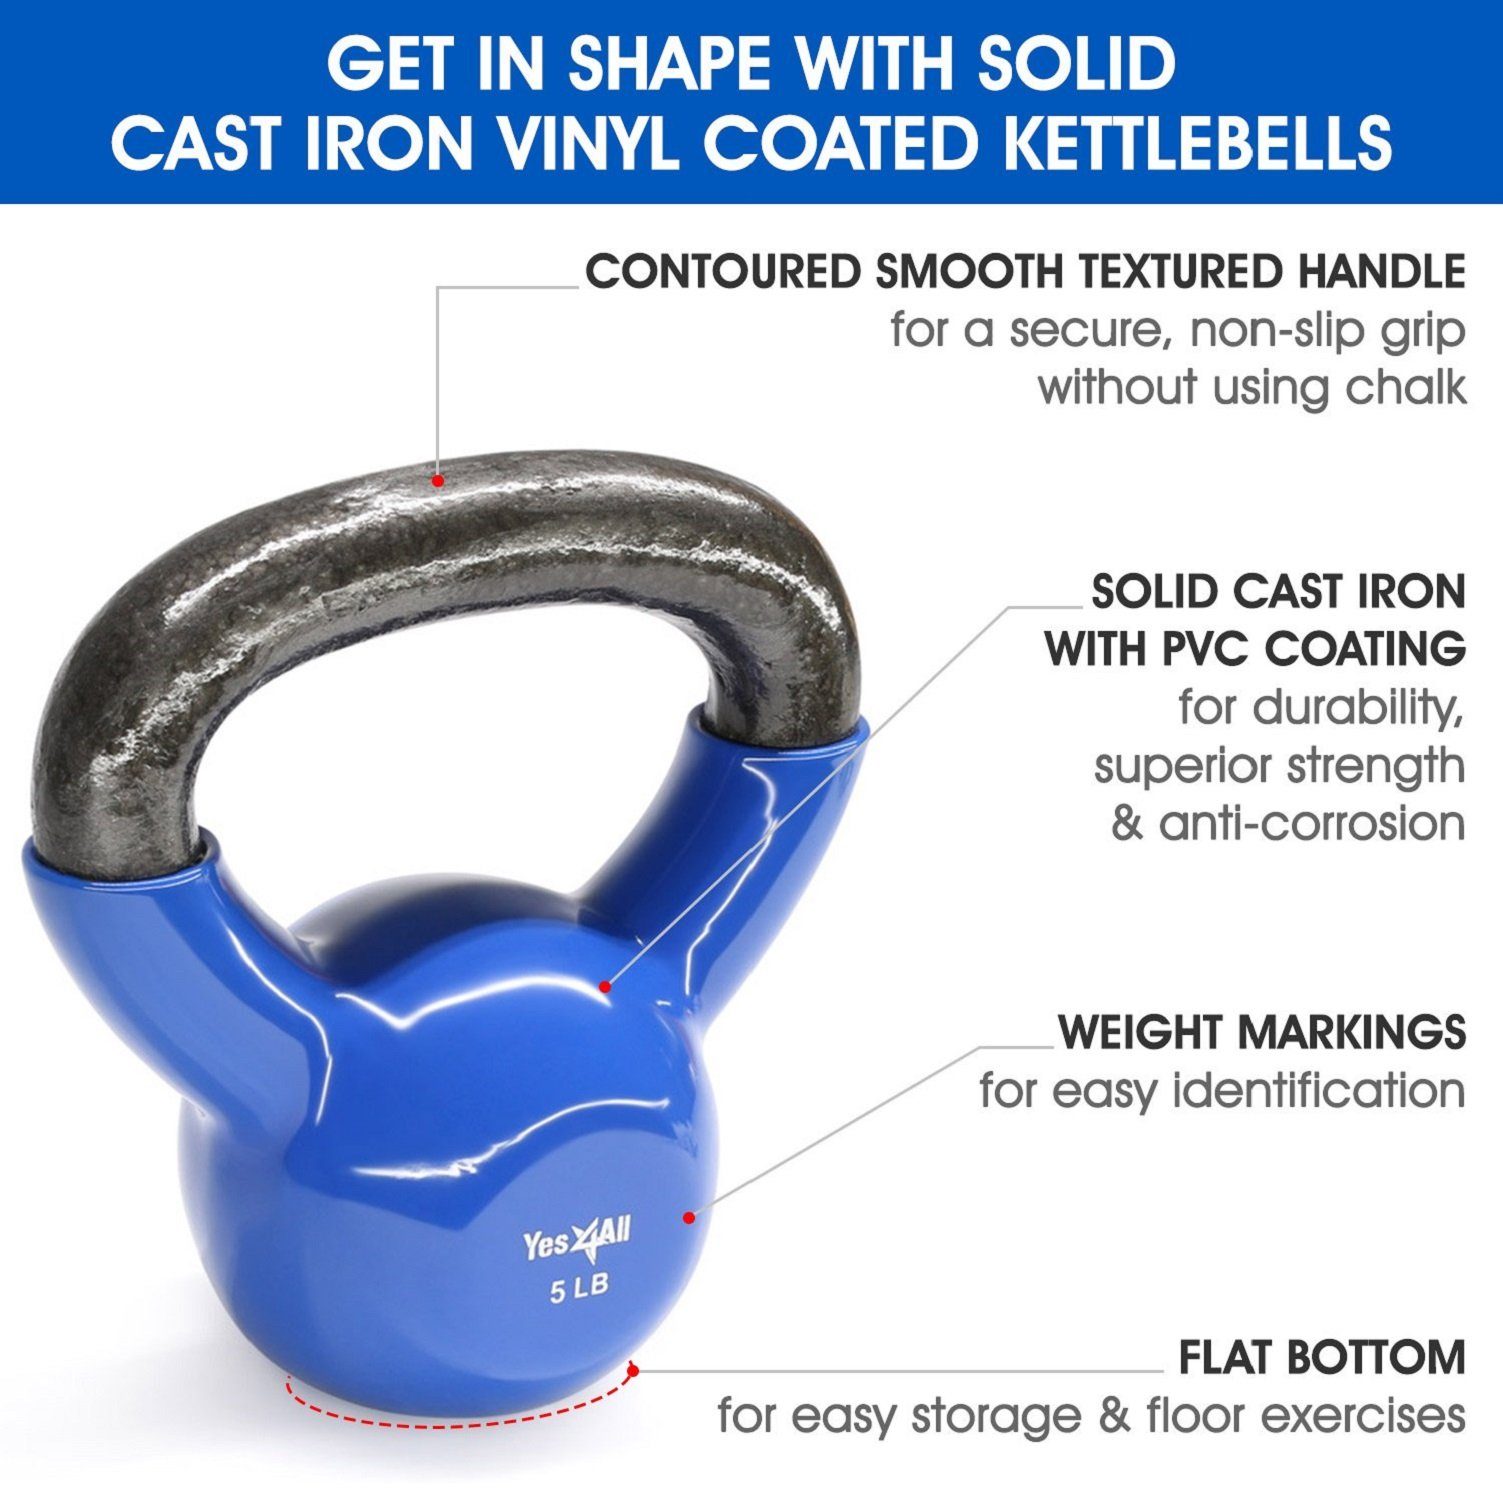 Yes4All Vinyl Coated Kettlebell Weights Set - Great for Full Body Workout and Strength Training - Vinyl Kettlebell 5 lbs by Yes4All (Image #4)